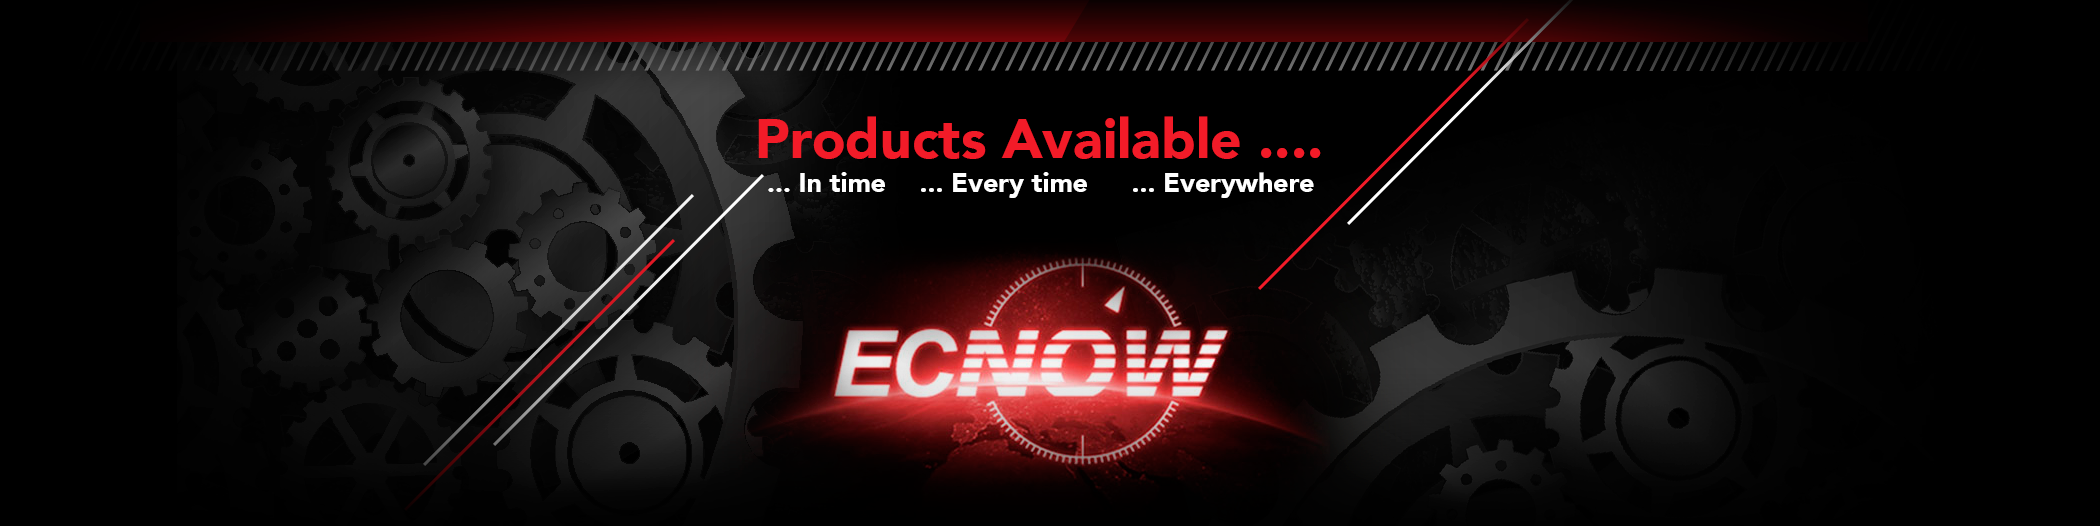 ECNOW: Products available in time, every time, everywhere.